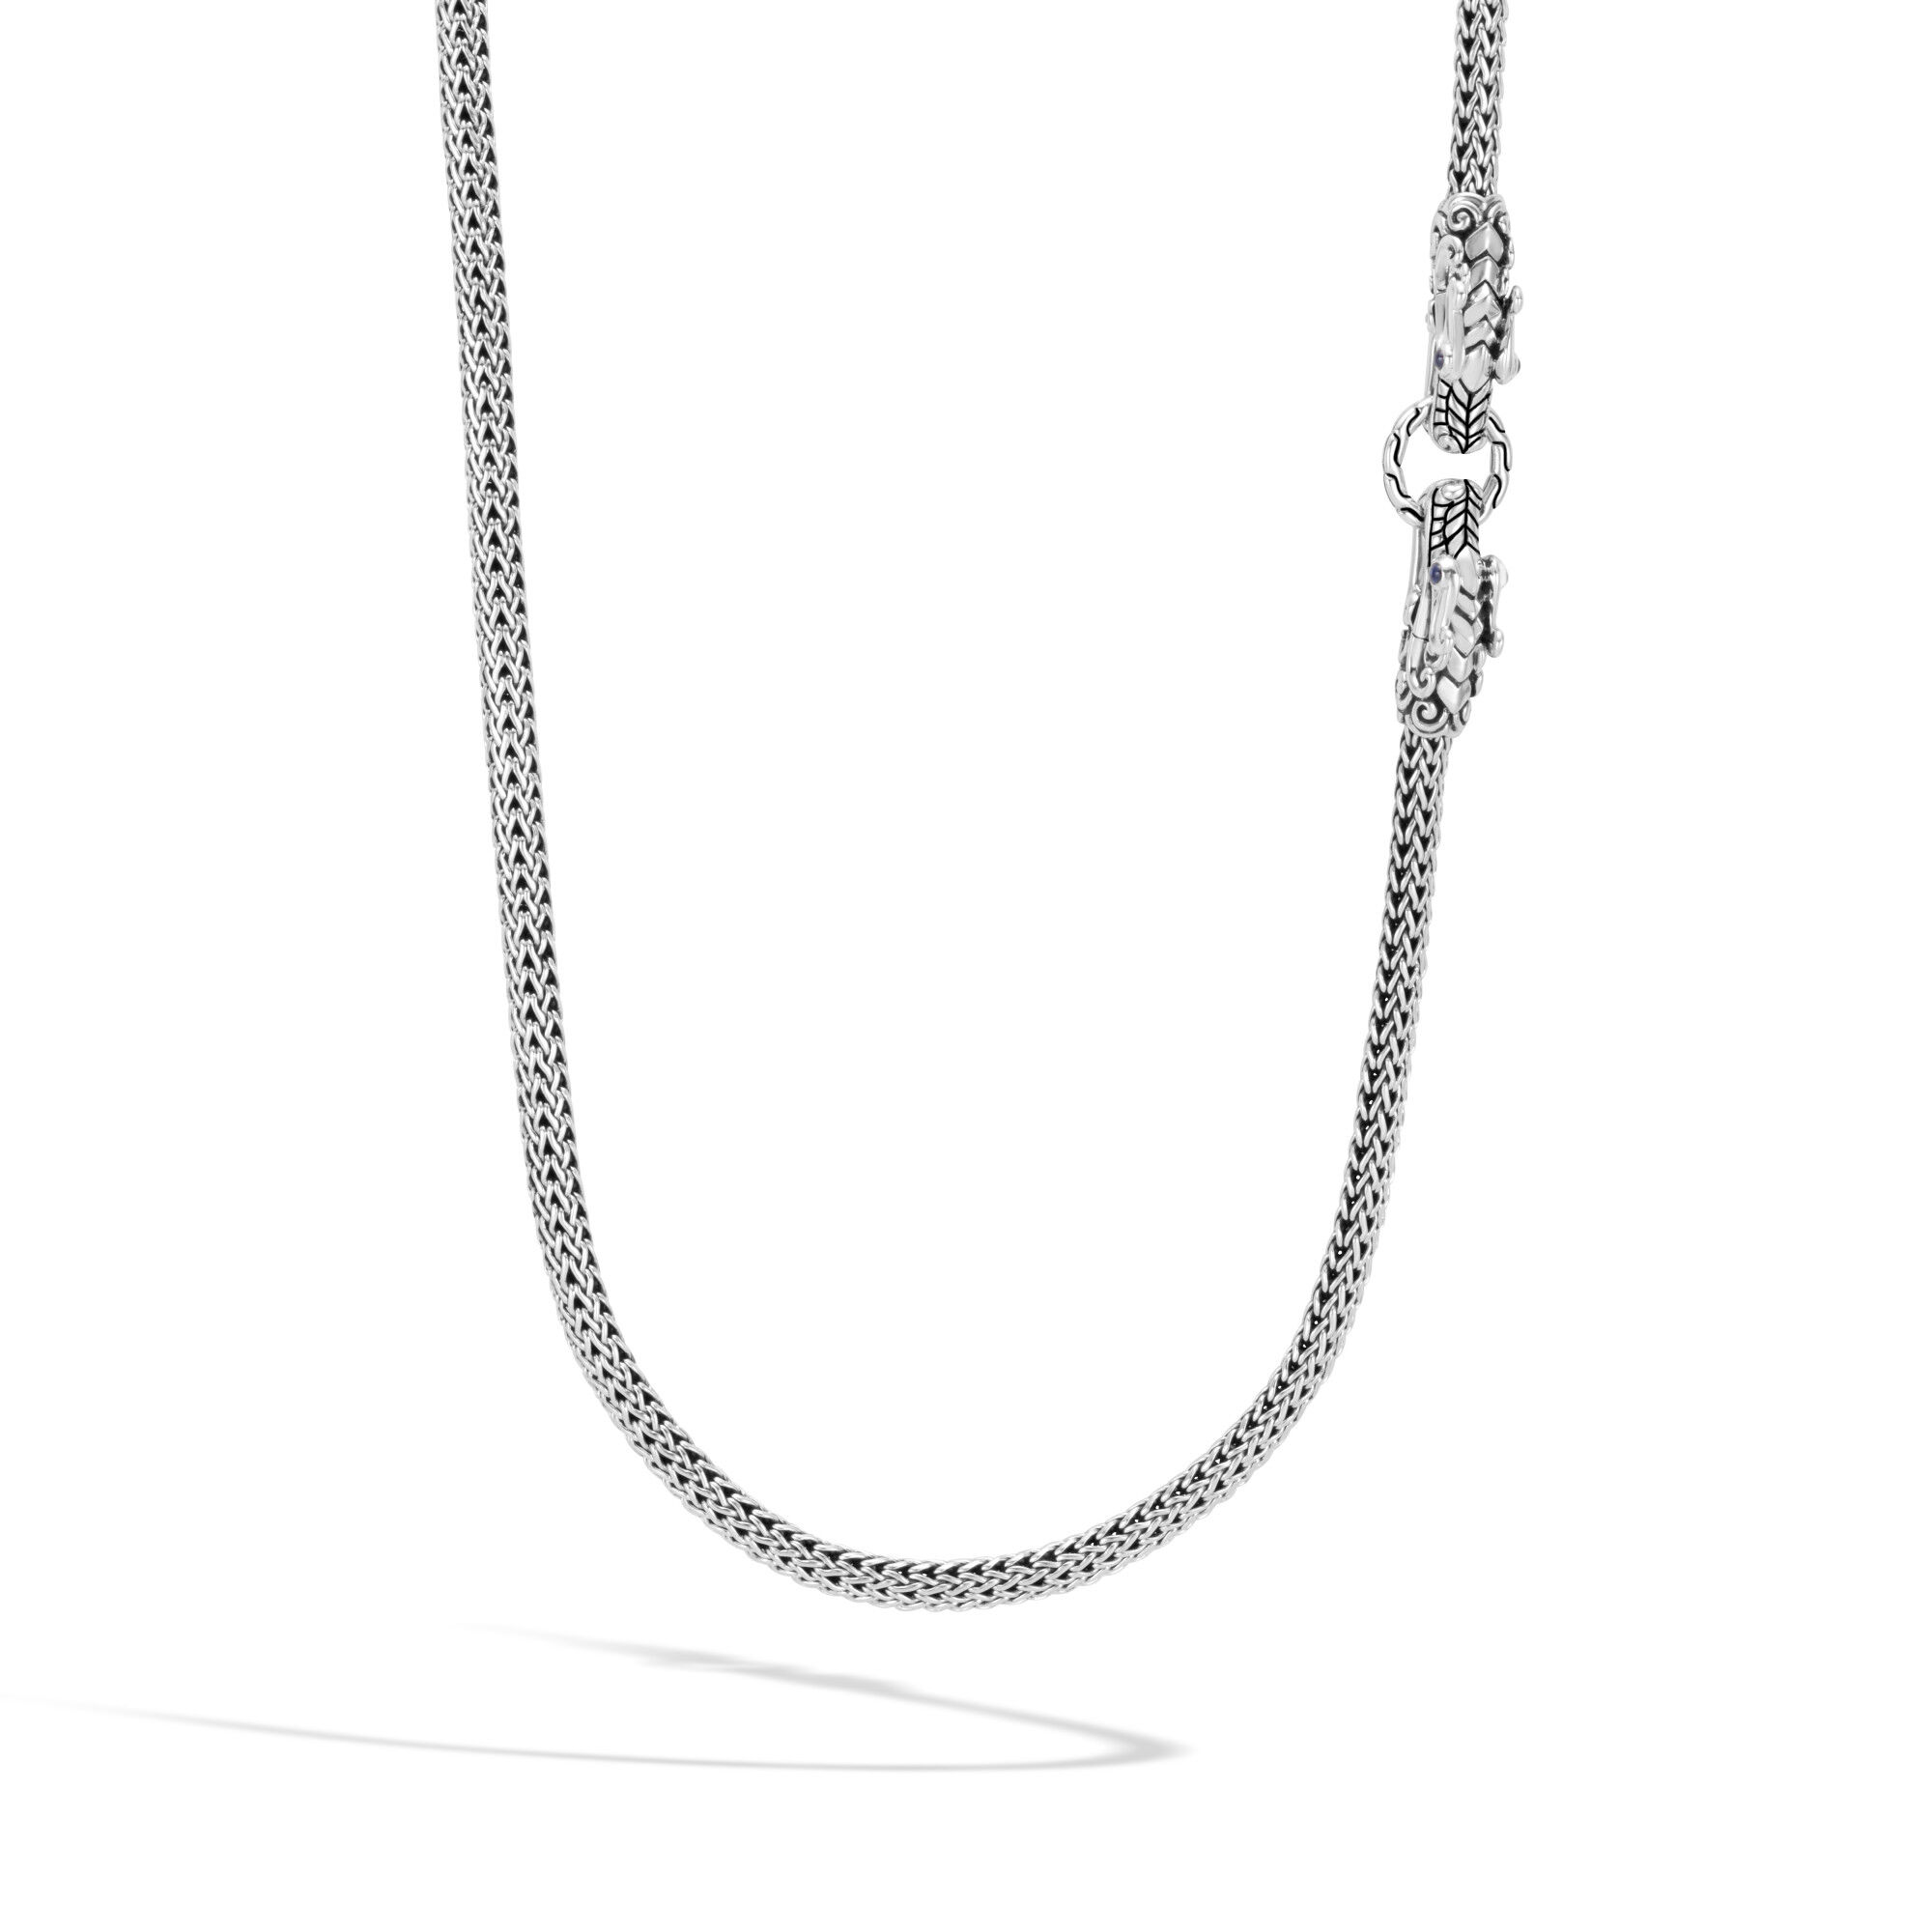 Legends Naga Long Necklace in Silver, , large